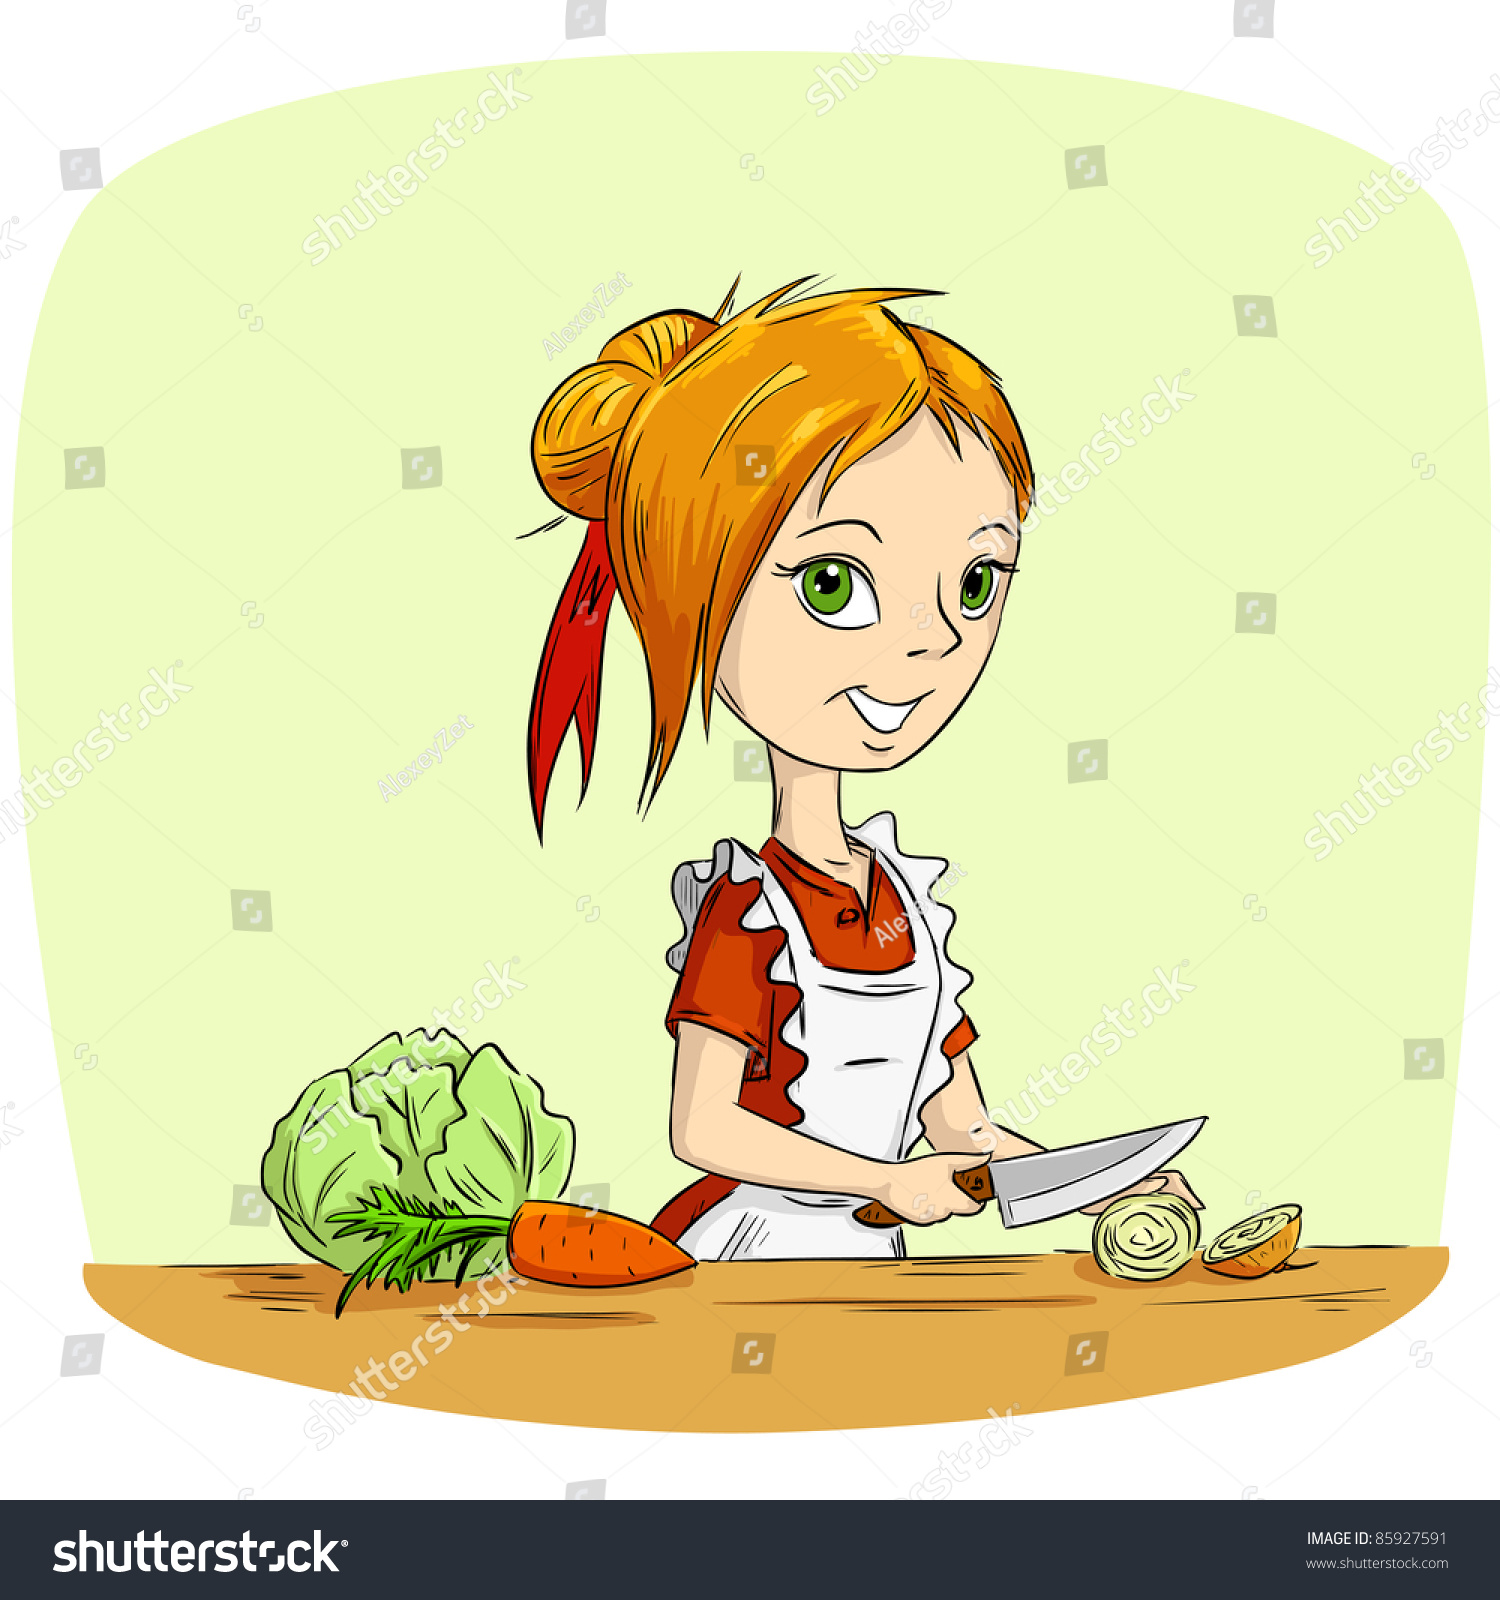 Cartoon Woman Housewife Cooking Vegetables Knife Stock ...